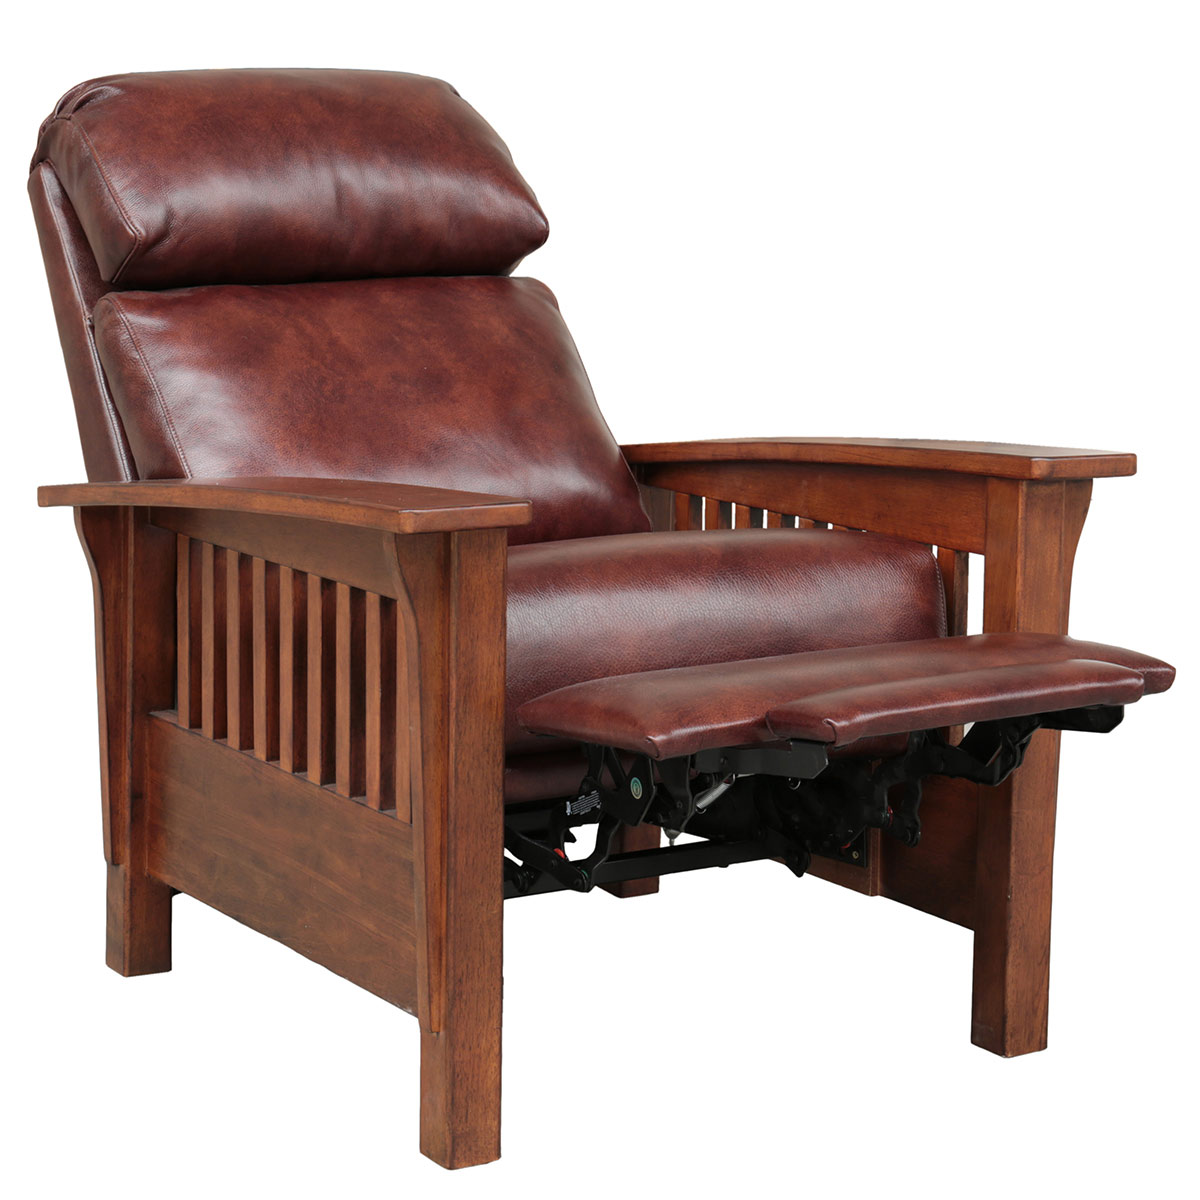 Barcalounger Mission Recliner Chair - Wenlock Fudge/All Leather